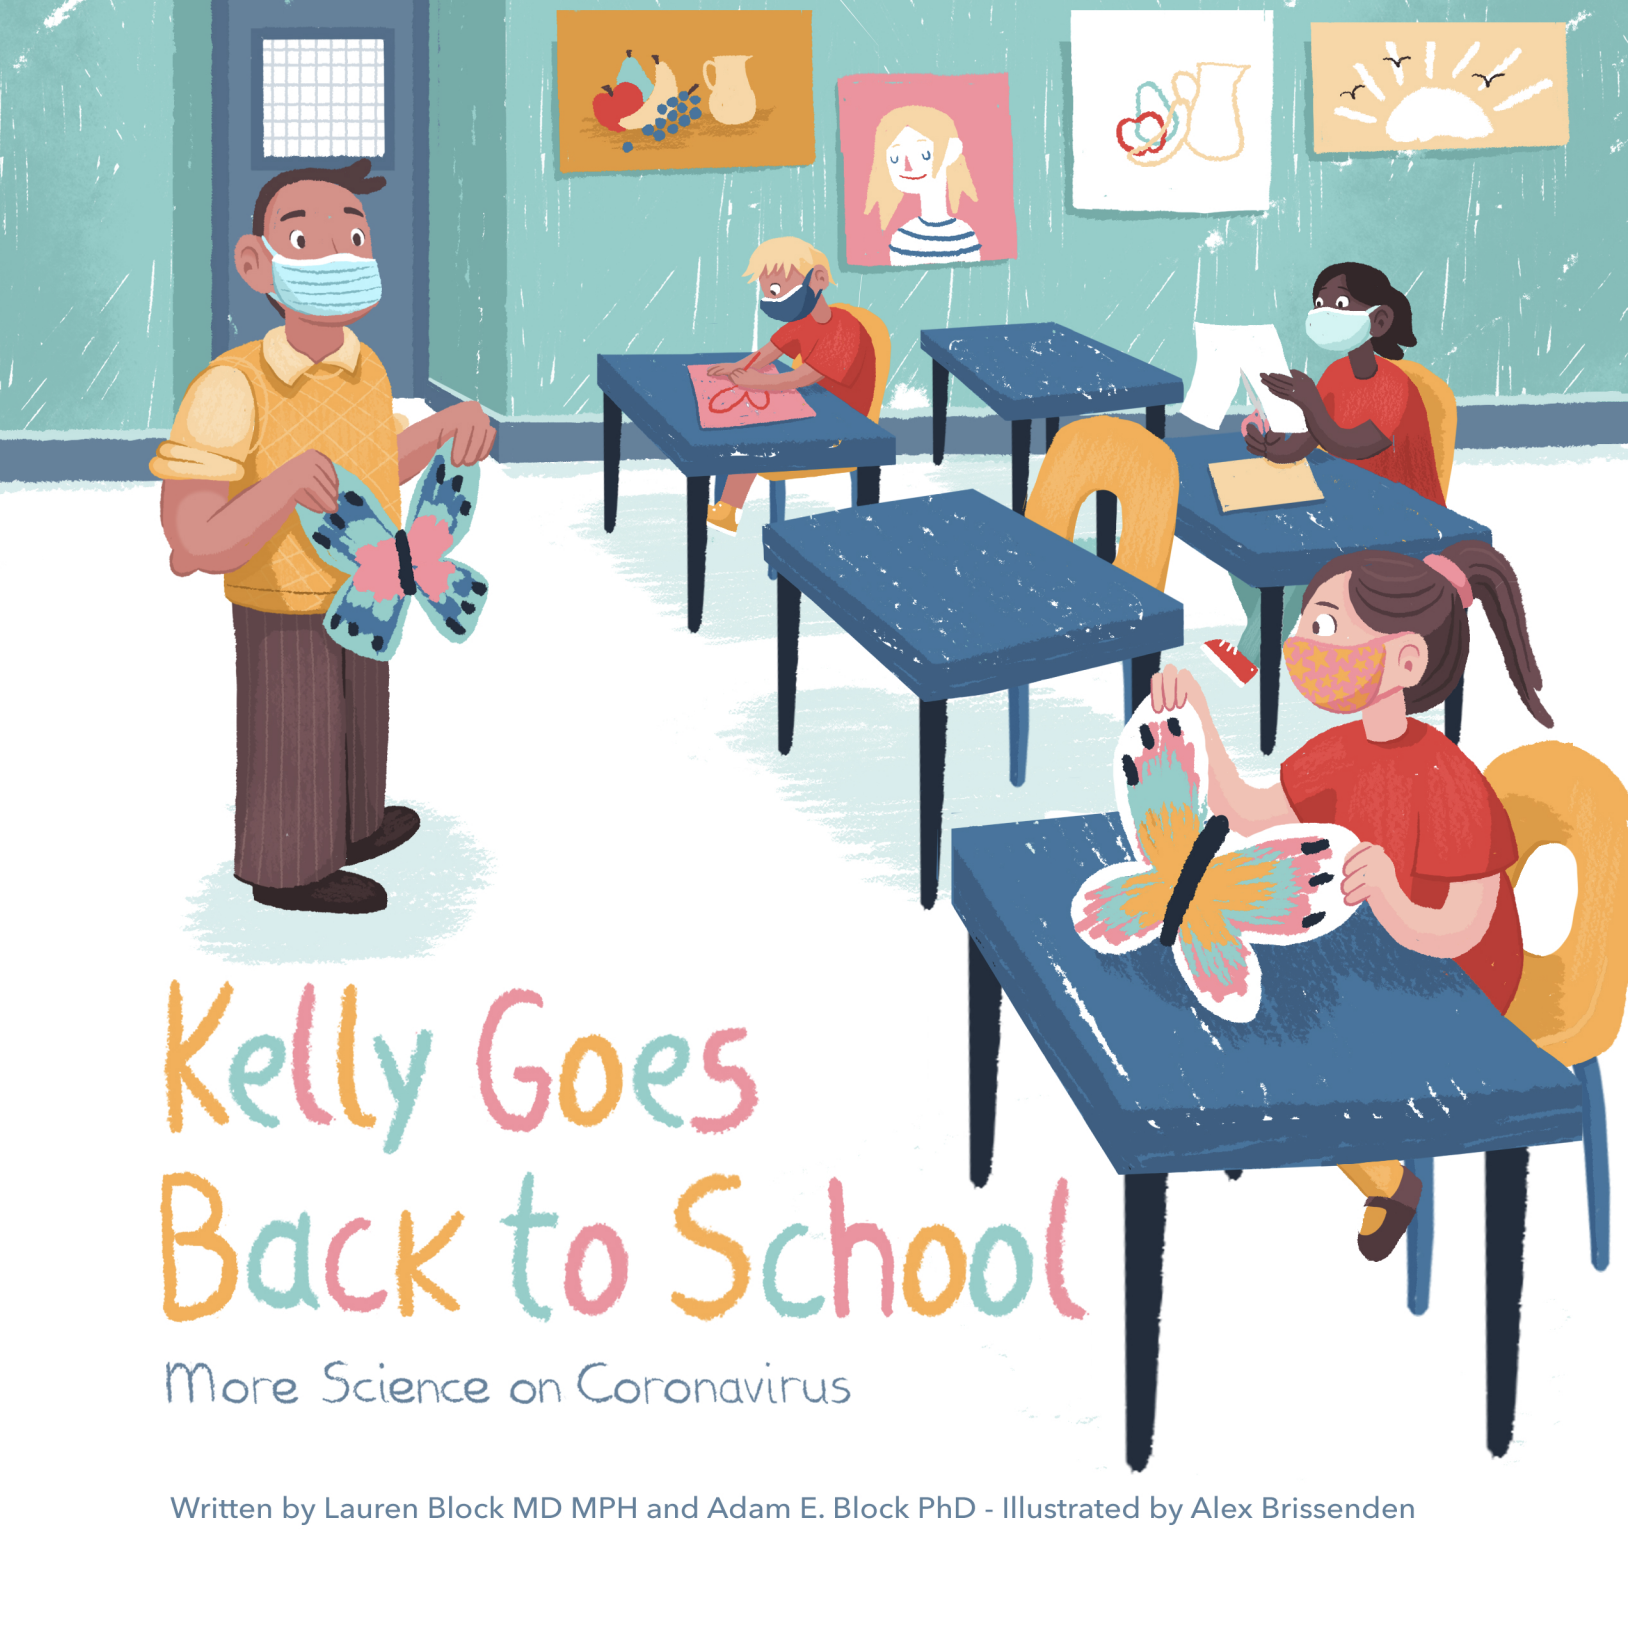 Kelly Goes Back to School: More Science on Coronavirus